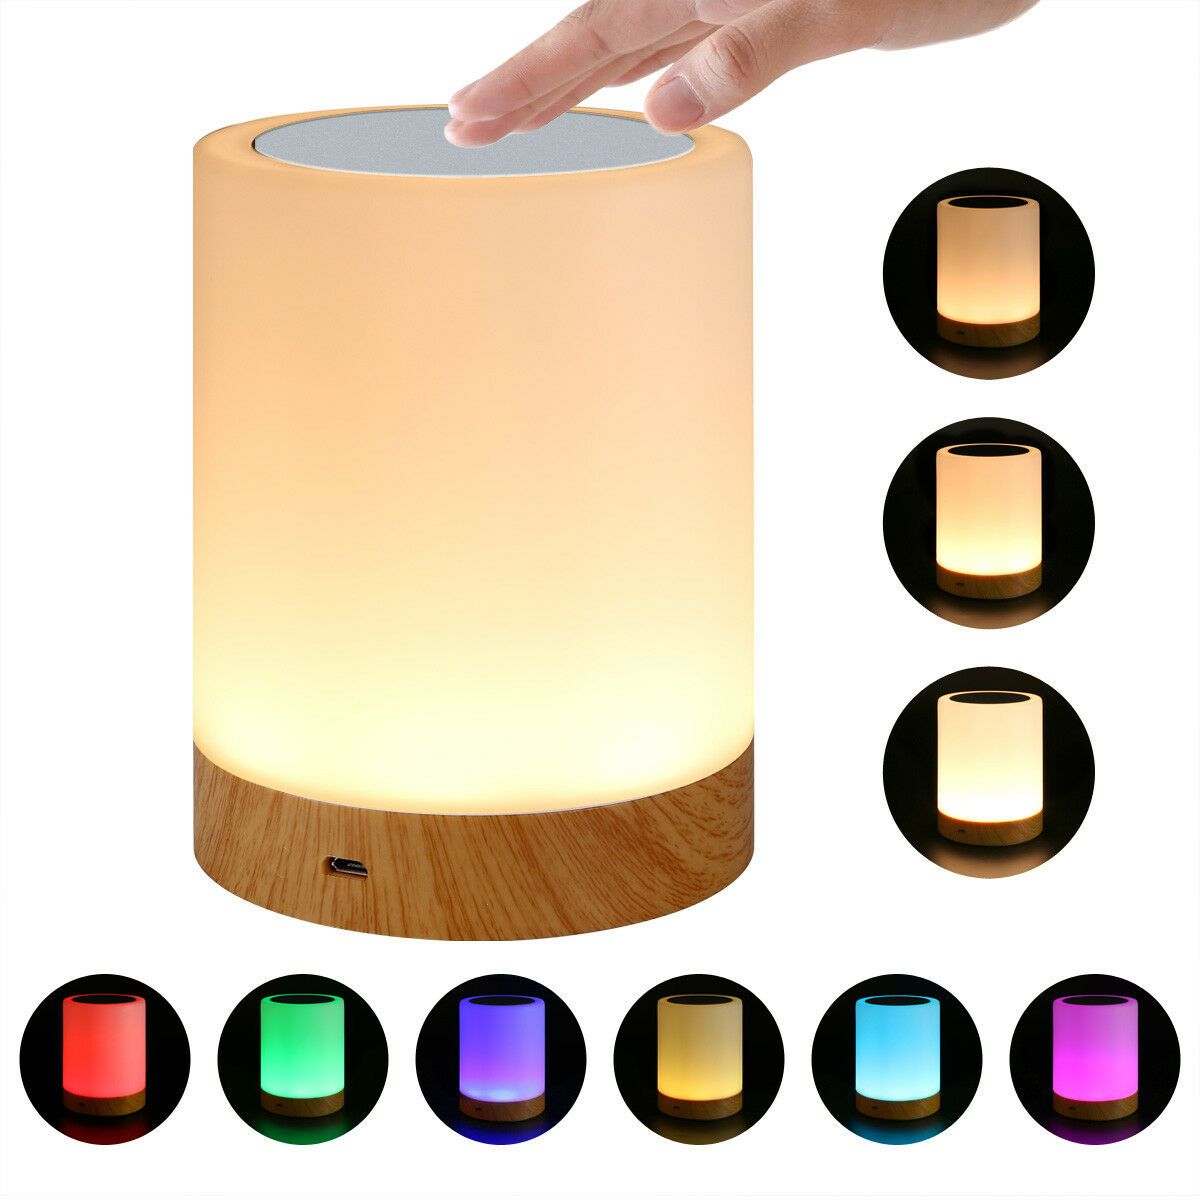 Led Touch Sensor Dimmable Table Lamp Baby Room Sleeping Aid Bedside Night Light Table Lamps Ideas Of Table Lamps Night Light Night Light Lamp Touch Lamp